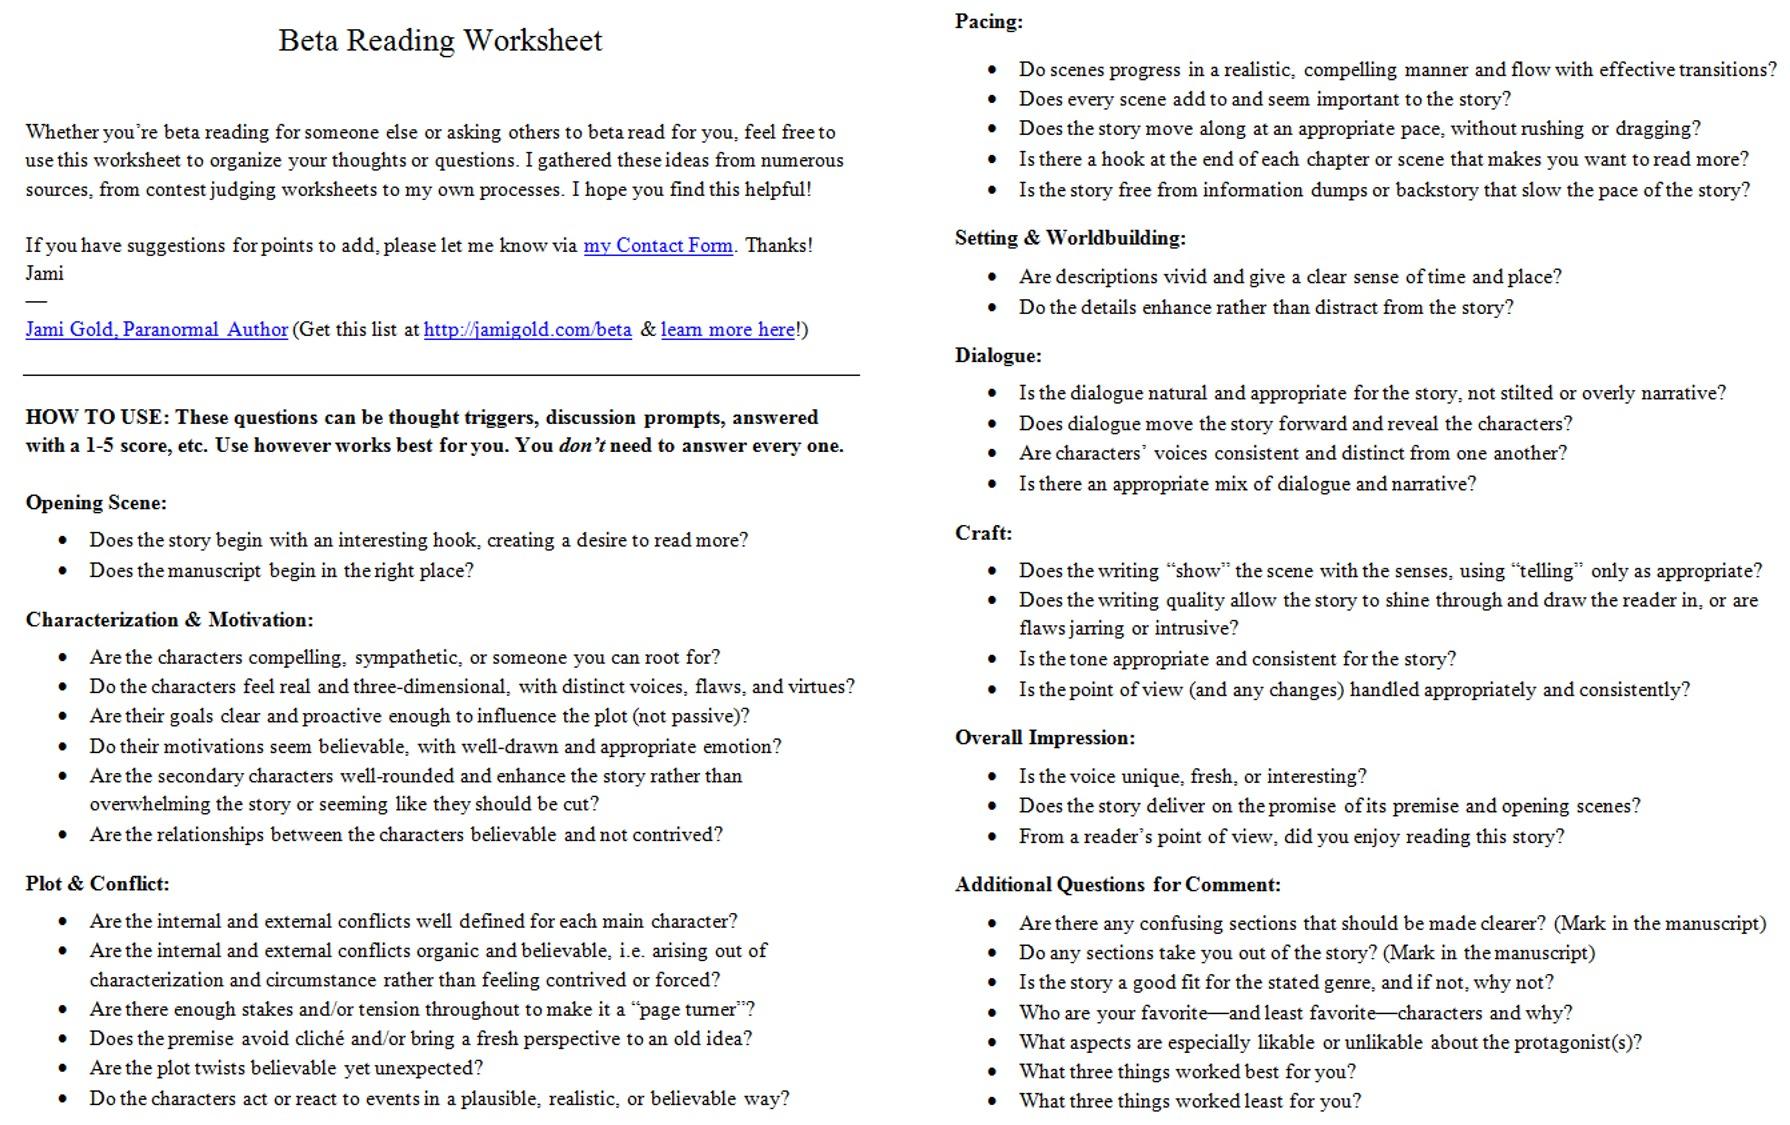 Weirdmailus  Unique Worksheets For Writers  Jami Gold Paranormal Author With Lovely Screen Shot Of The Twopage Beta Reading Worksheet With Breathtaking Congruent Worksheets Also Solving Systems Of Equations Algebraically Worksheet Answers In Addition Frederick Douglass Worksheets And Pure Substances And Mixtures Worksheet As Well As Pearson Square Worksheet Additionally Thought Stopping Worksheets From Jamigoldcom With Weirdmailus  Lovely Worksheets For Writers  Jami Gold Paranormal Author With Breathtaking Screen Shot Of The Twopage Beta Reading Worksheet And Unique Congruent Worksheets Also Solving Systems Of Equations Algebraically Worksheet Answers In Addition Frederick Douglass Worksheets From Jamigoldcom